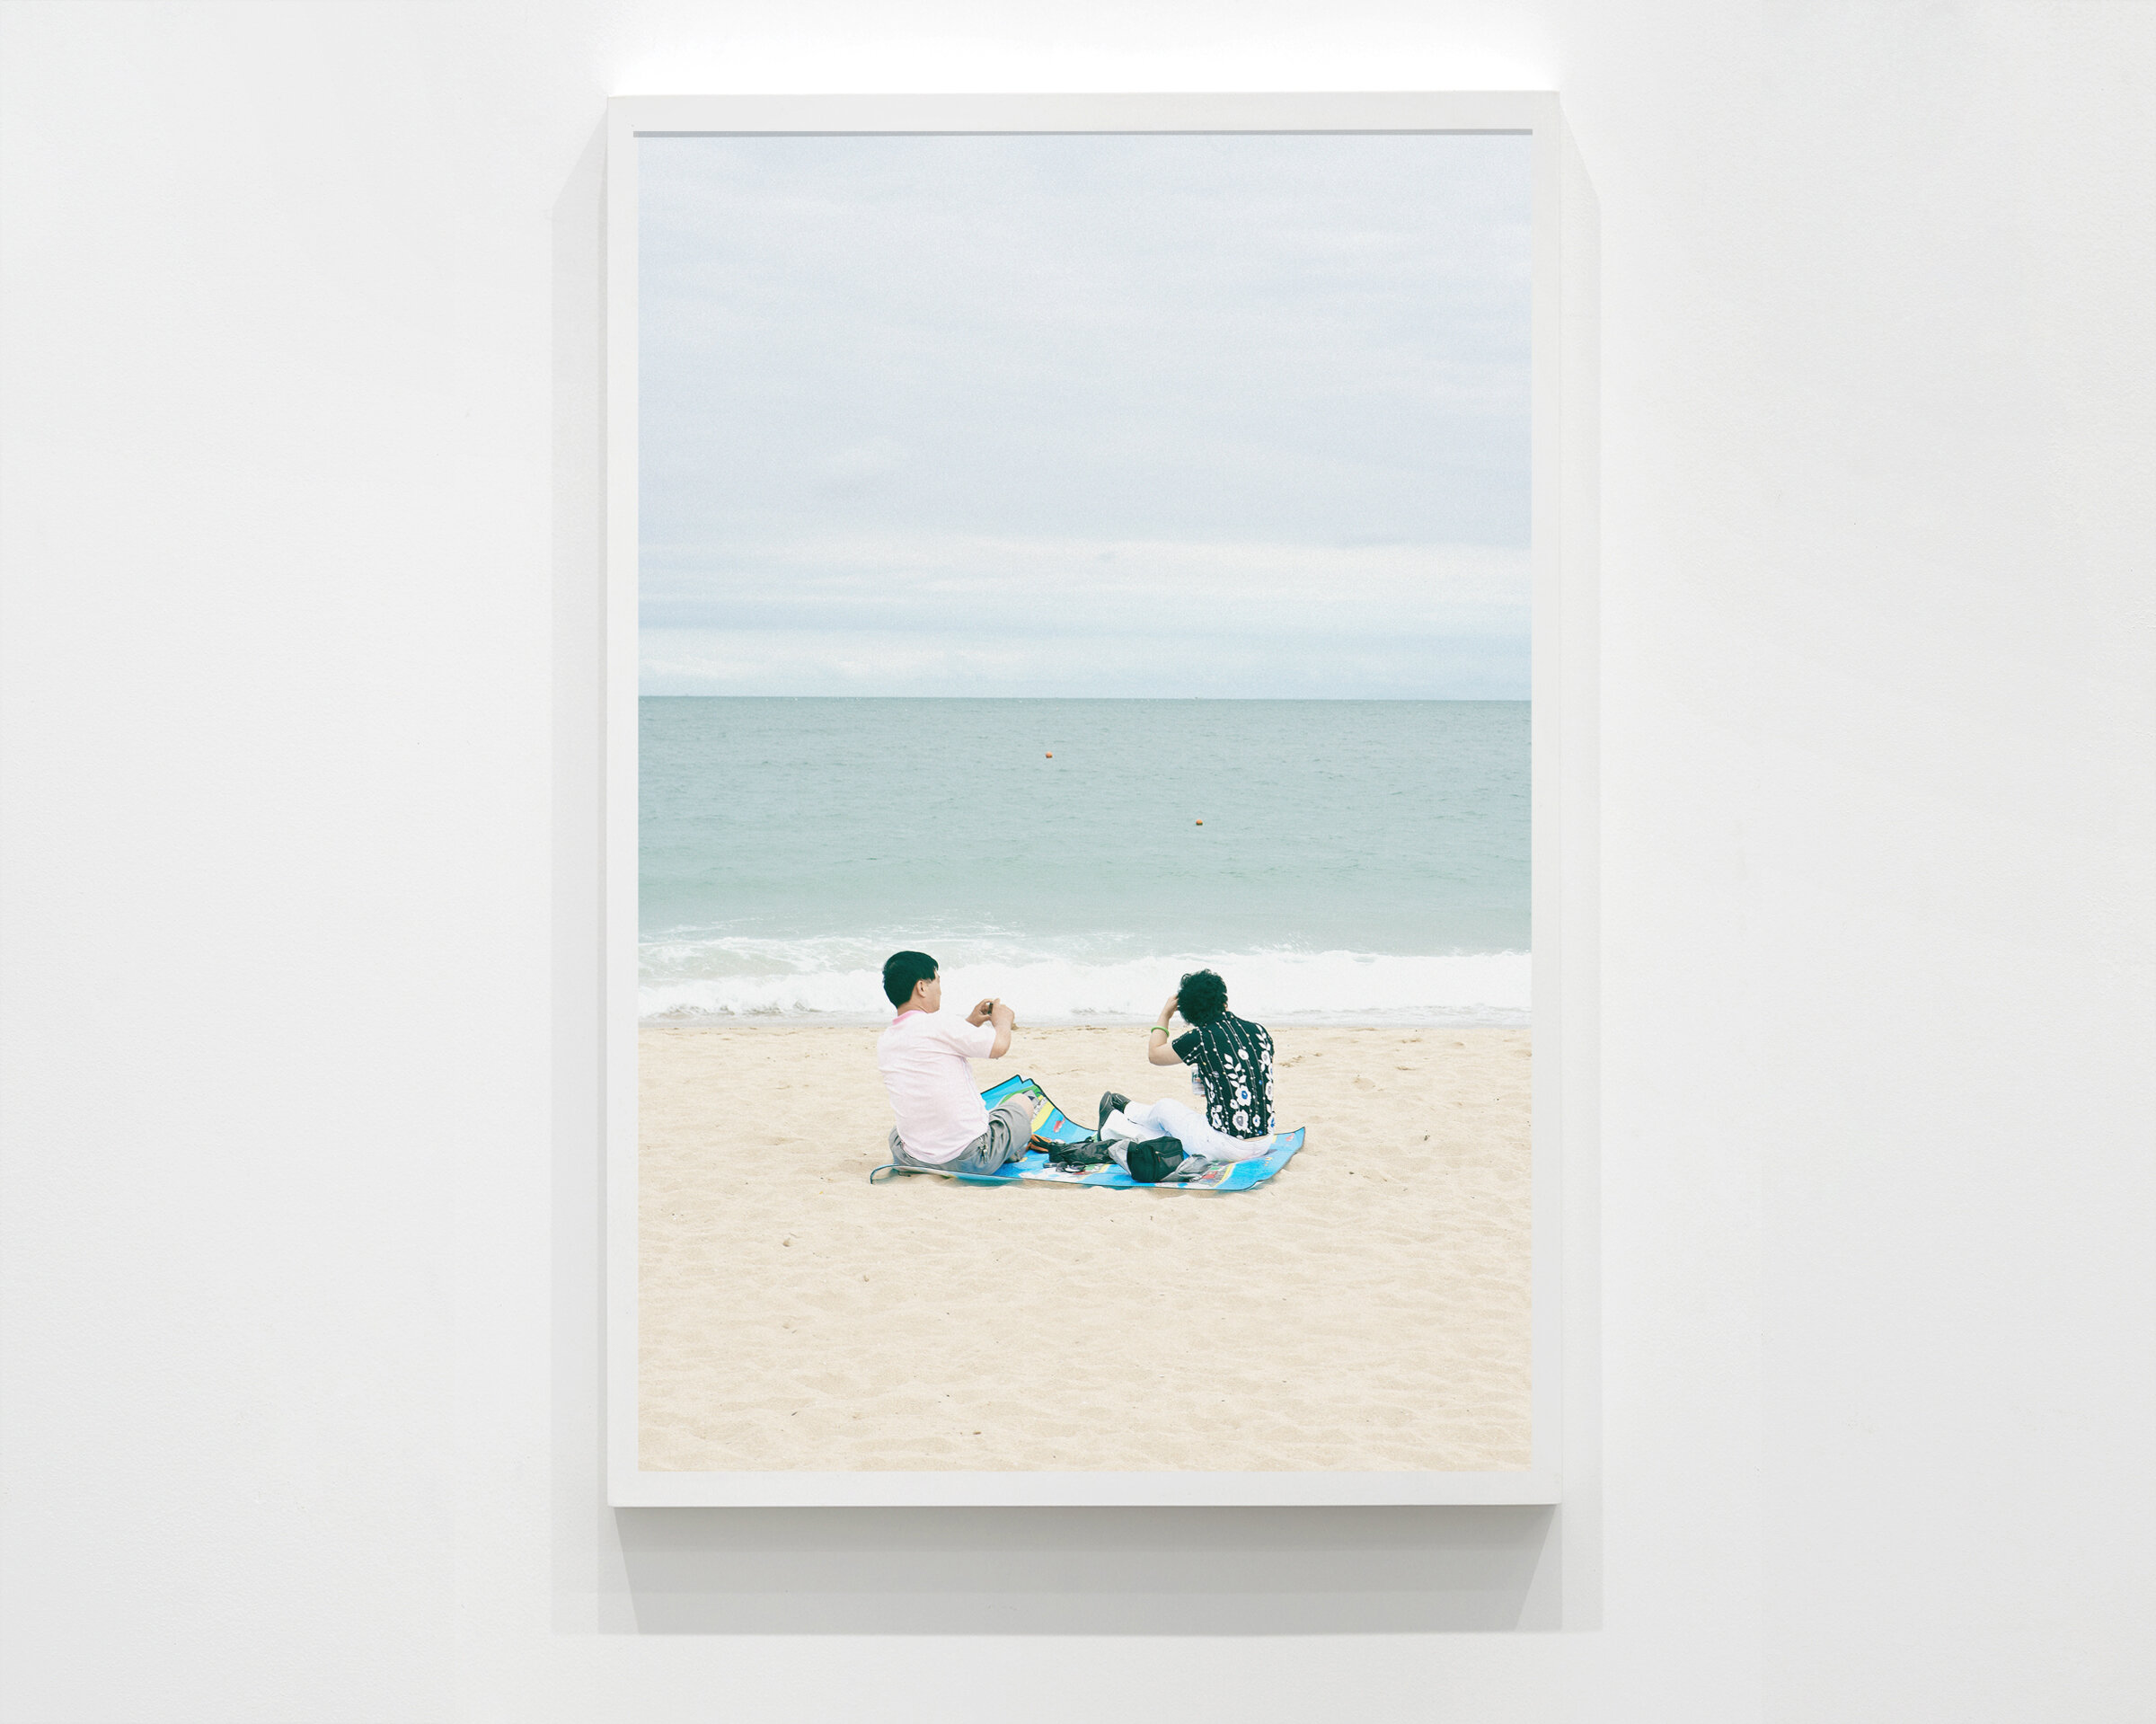 Pacific Distance (Busan #2), 2009  36 x 24 in (91.44 x 60.96 cm)